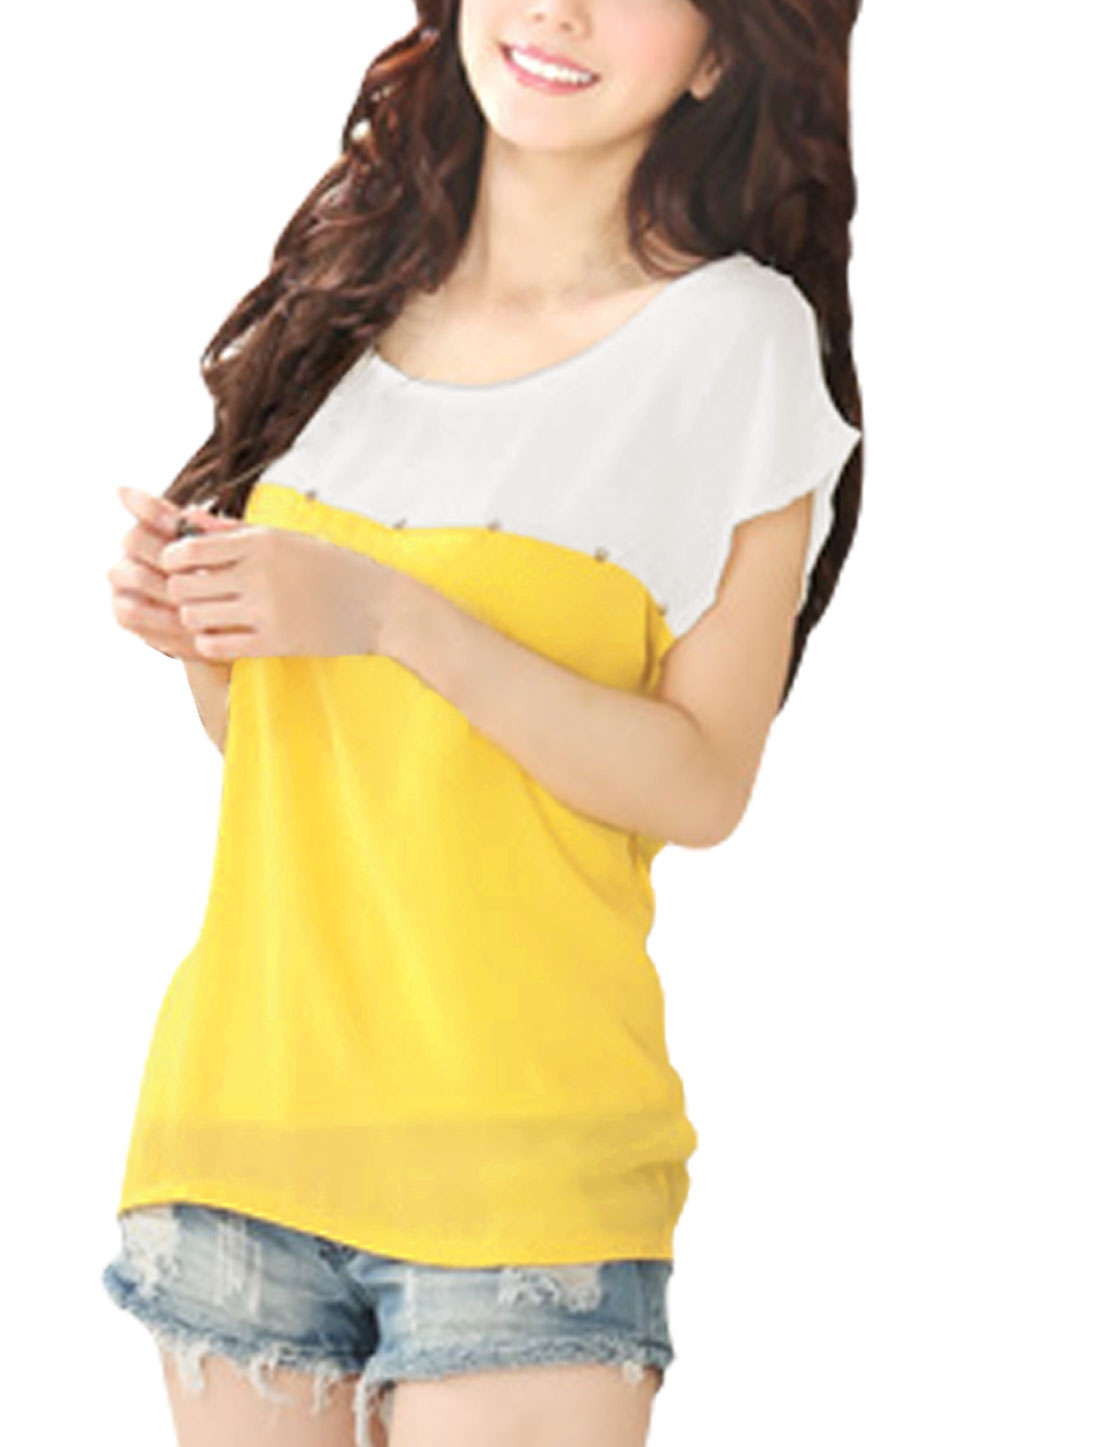 Women Chic Round Neck Short Dolman Sleeve Yellow White Blouse XL